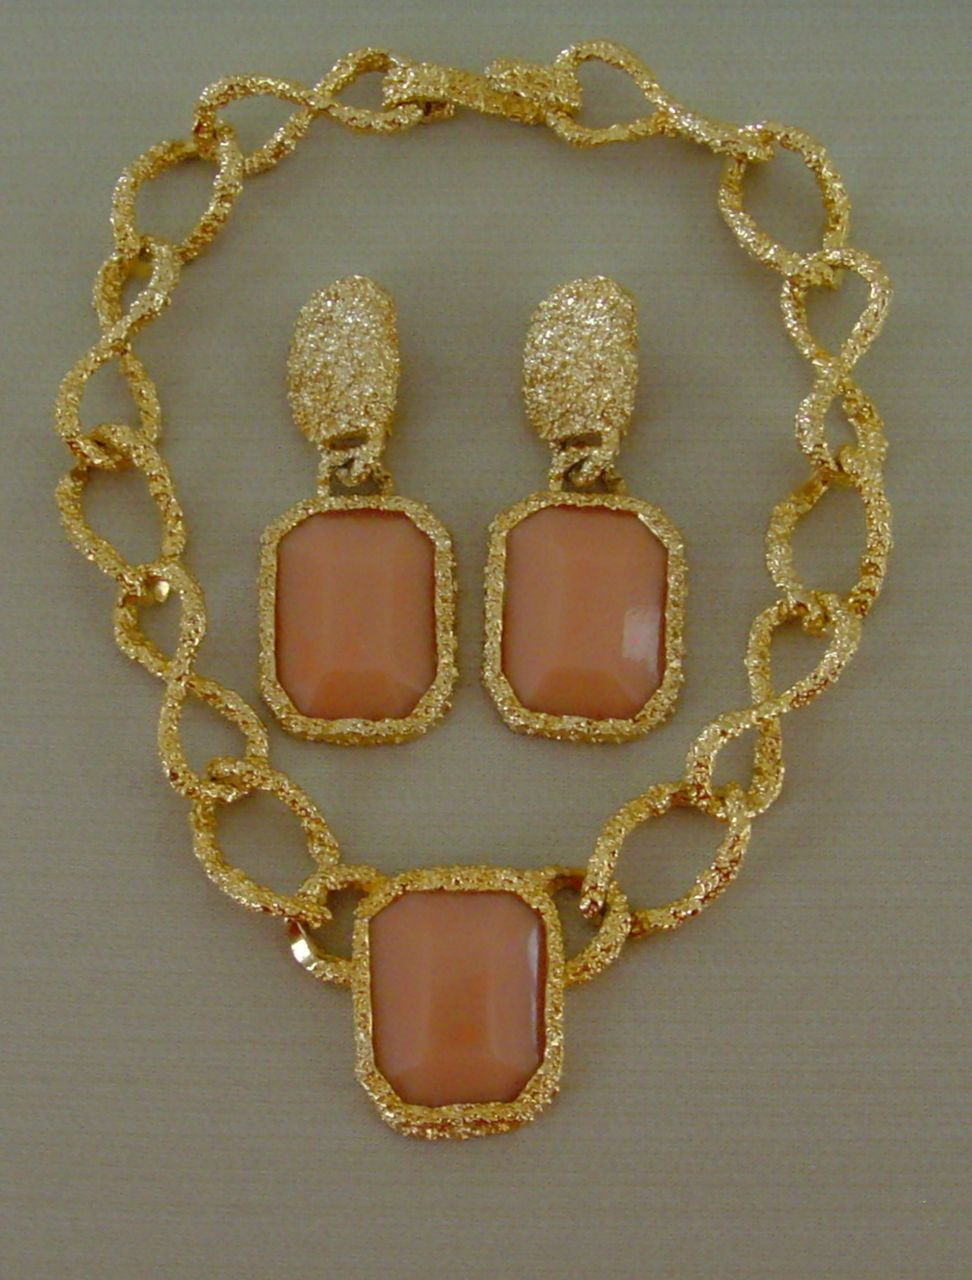 Les Bernard Lucite and Gold-Tone Metal Necklace and Earring Set